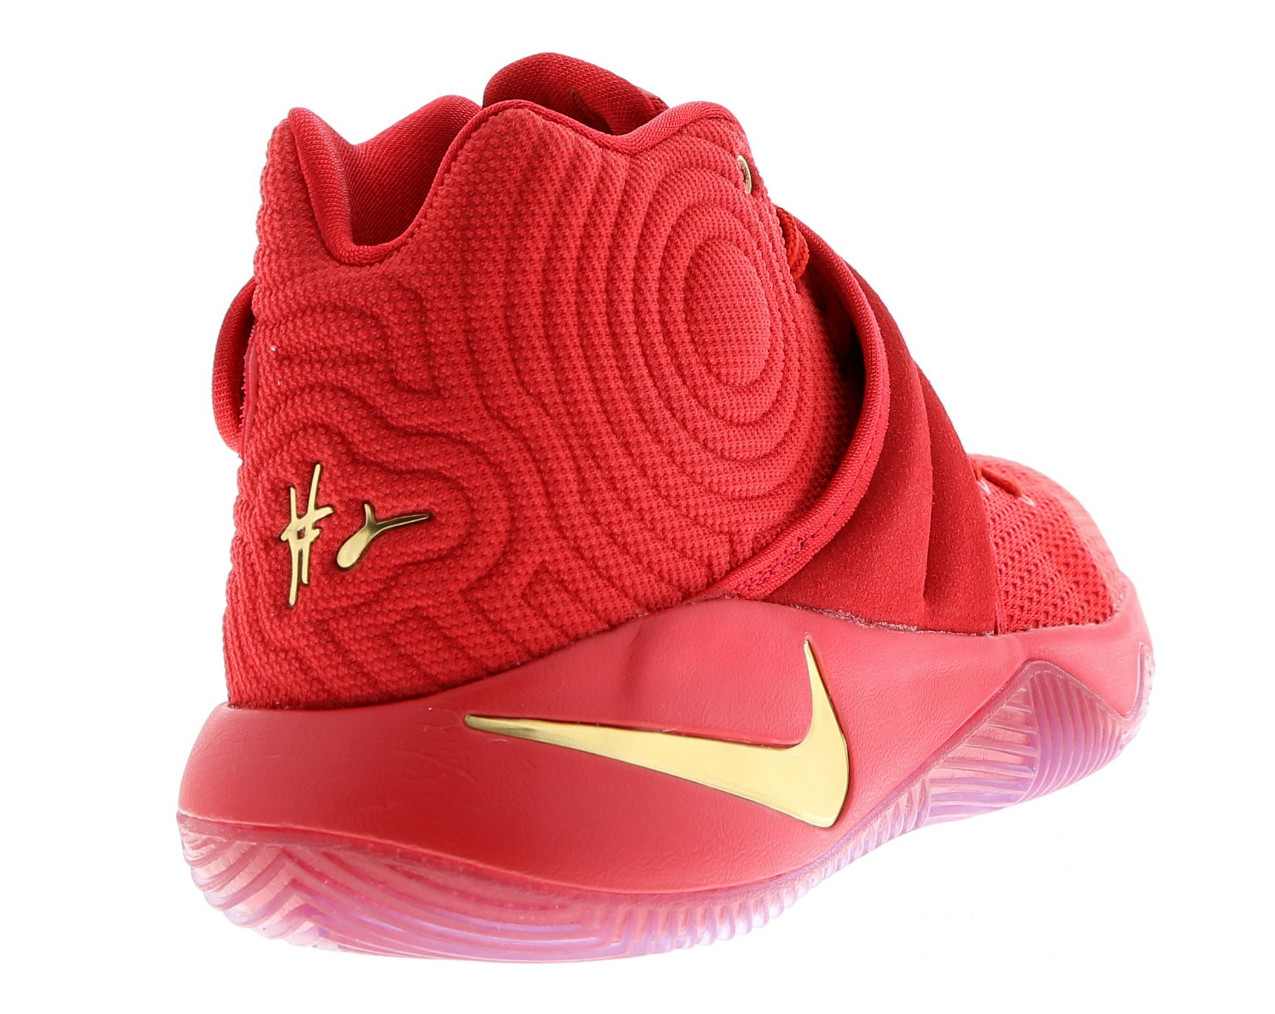 best sneakers 38757 0a082 Nike Kyrie 2 Gold Medal 3 | Def Pen